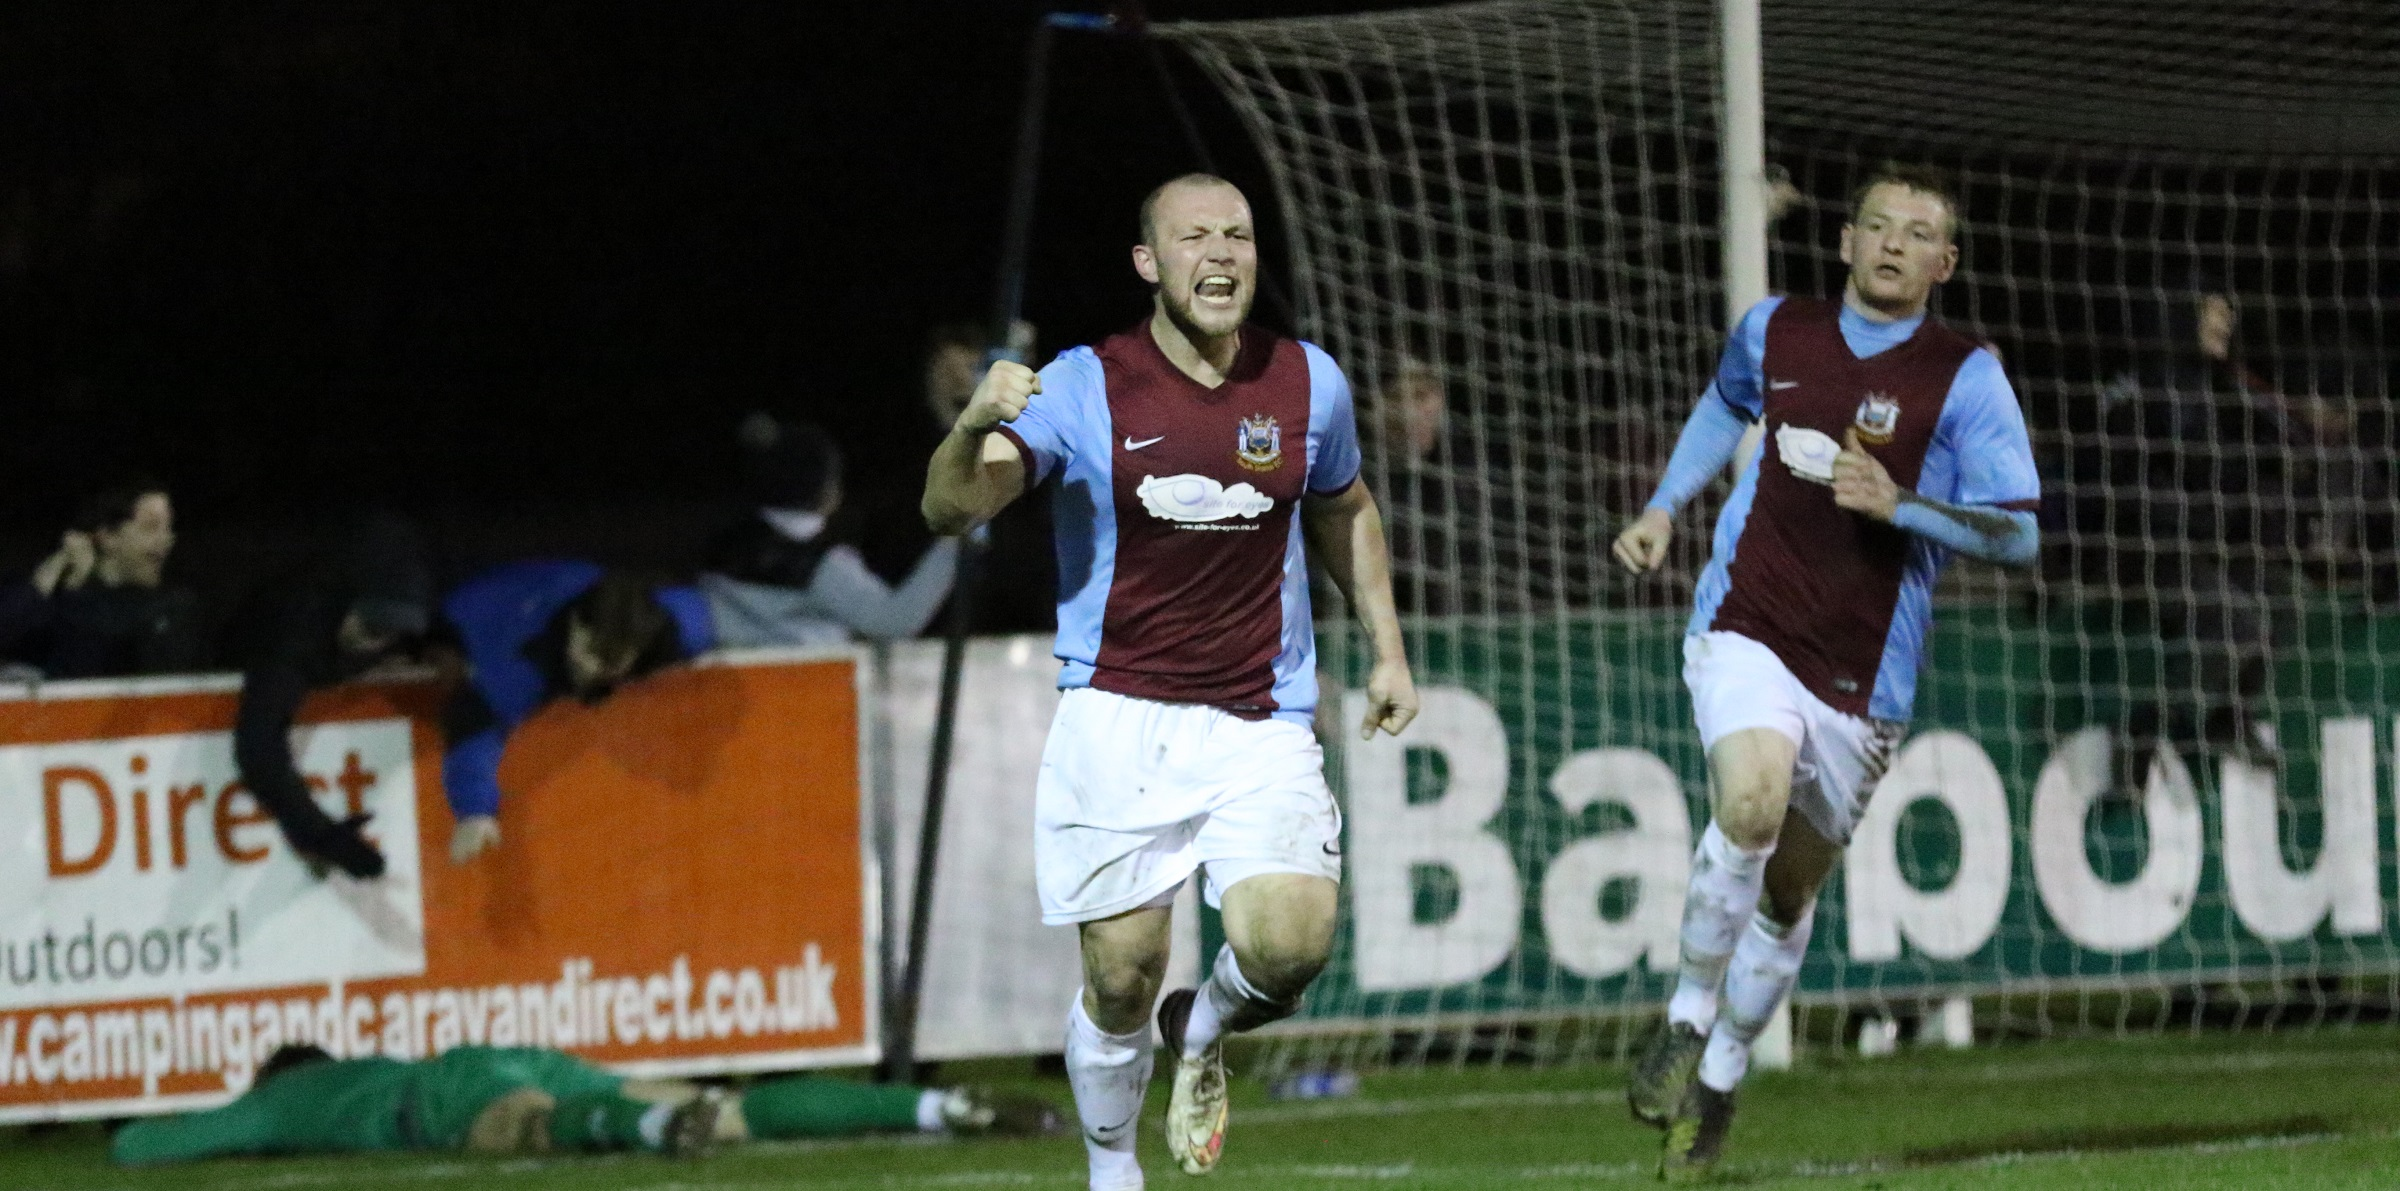 South Shields 3-2 Gateshead